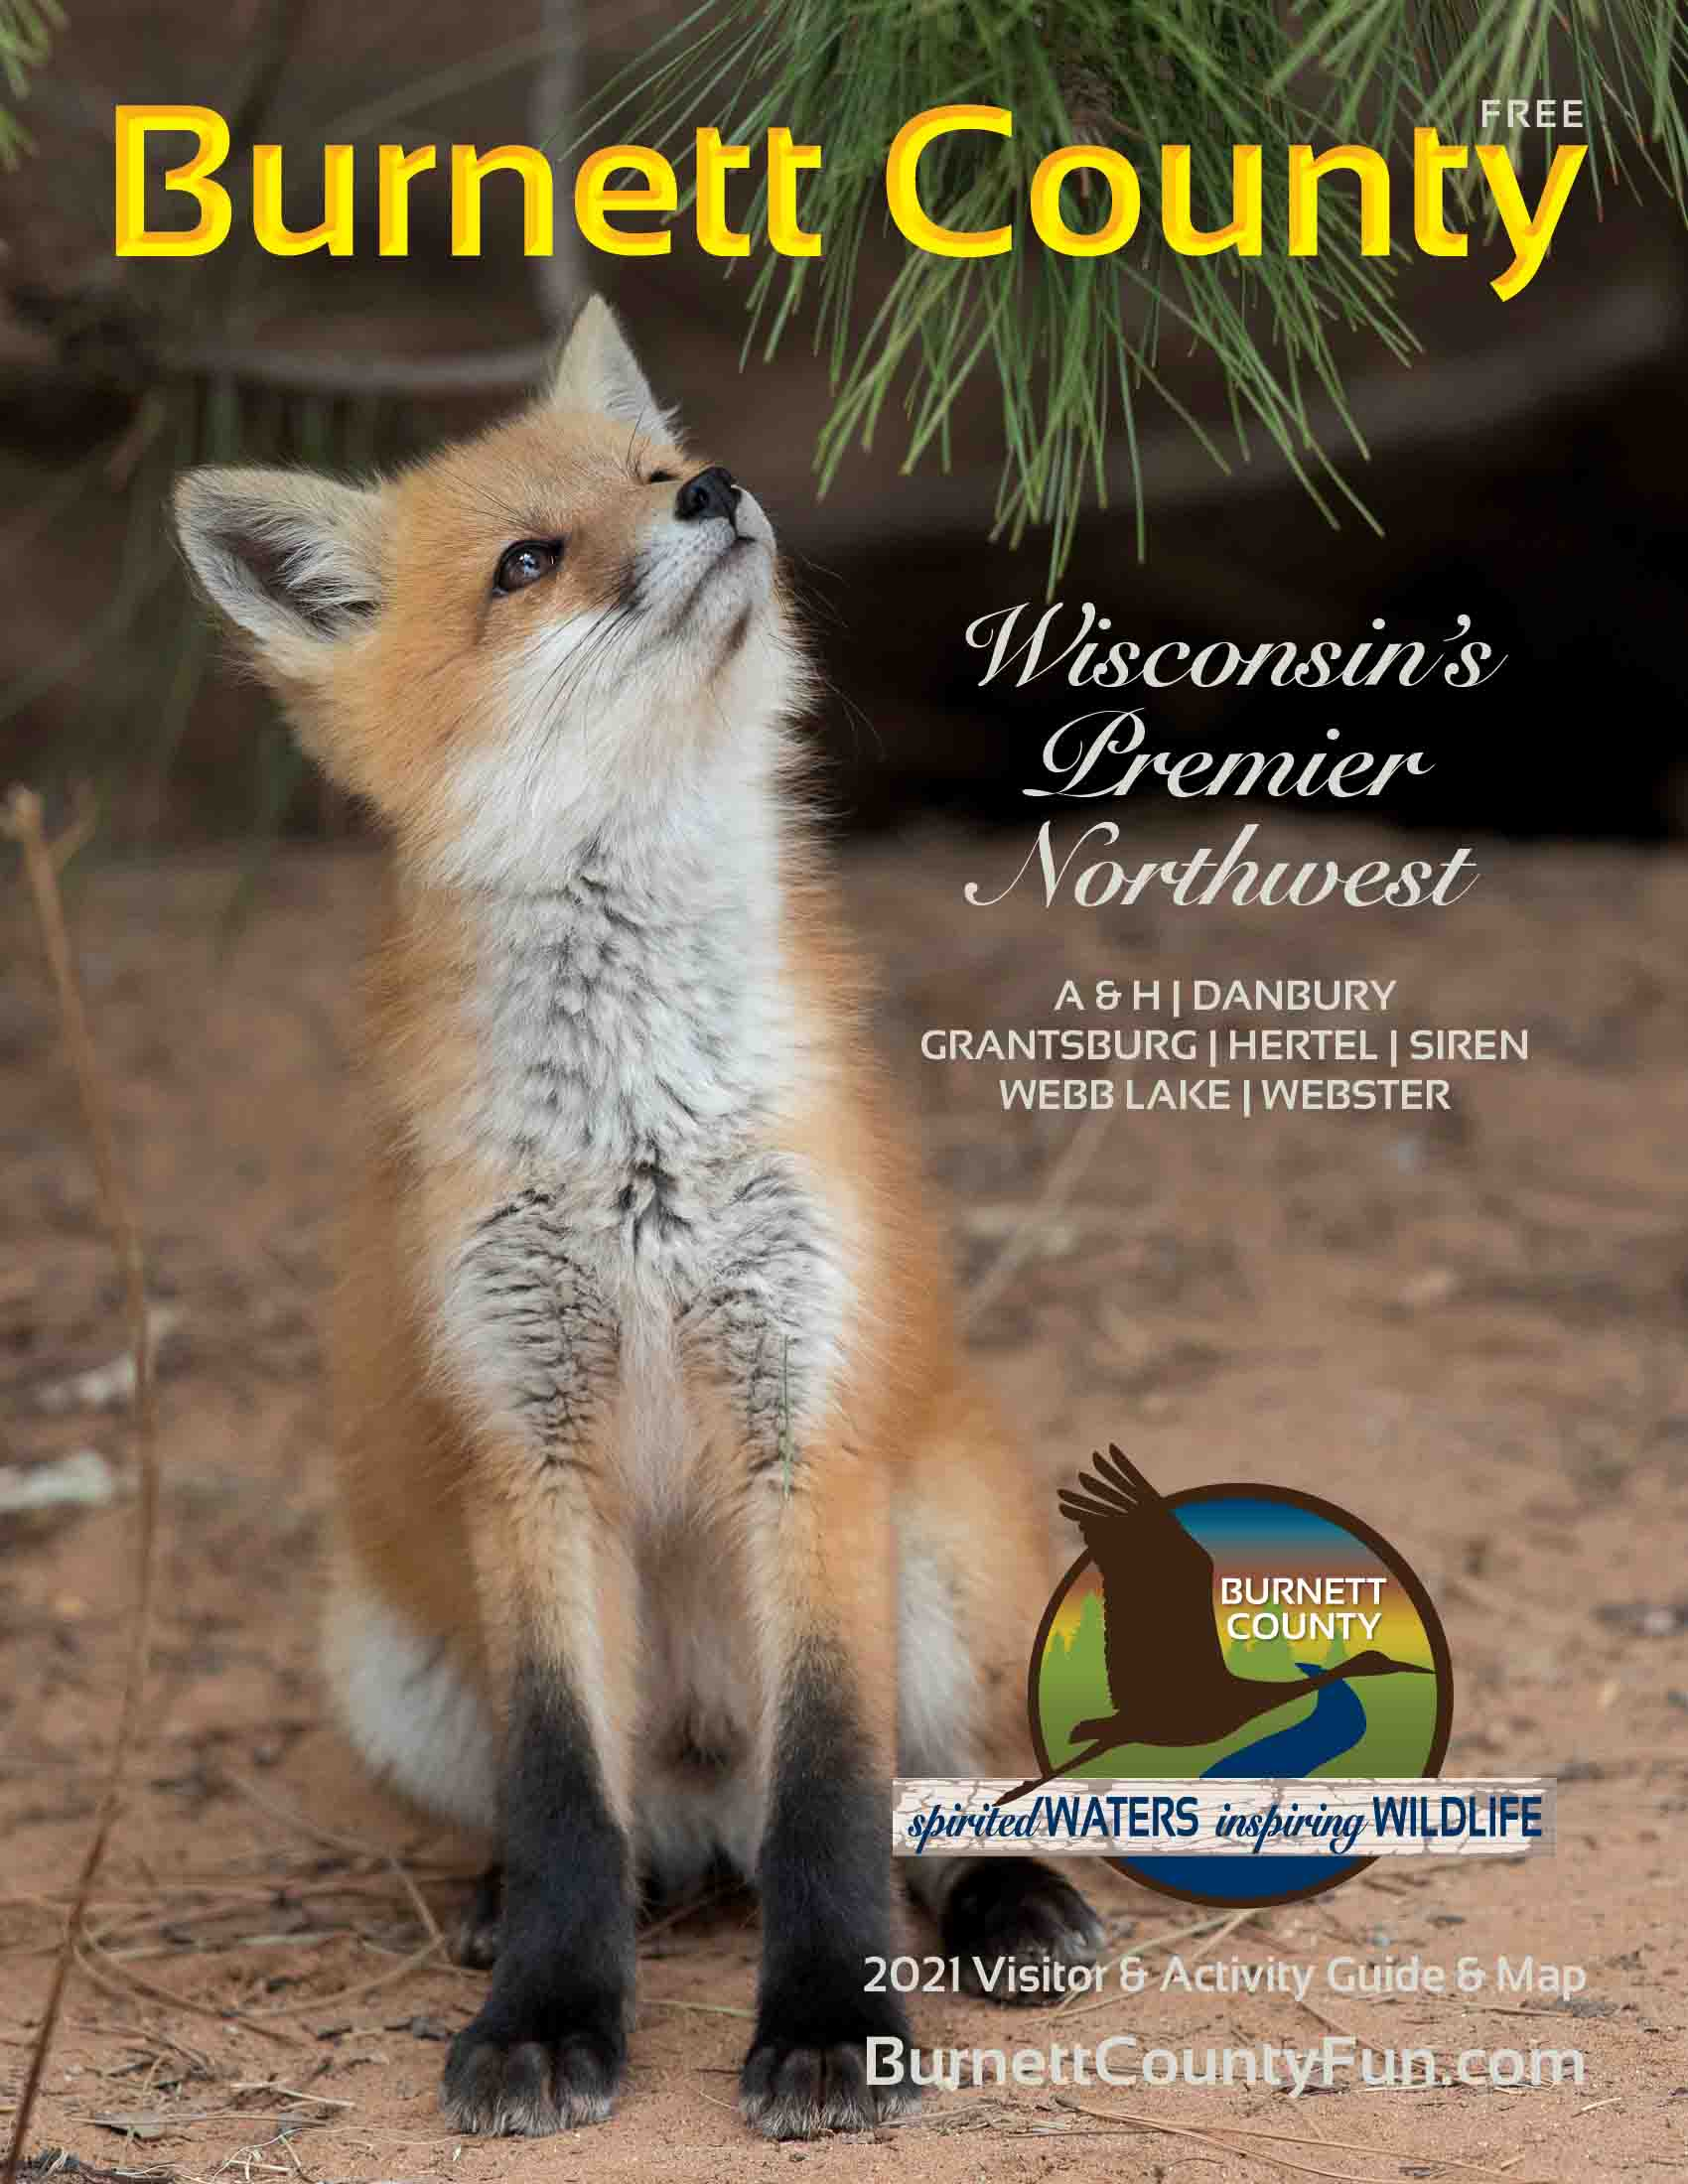 2021 Burnett County Guide and Map